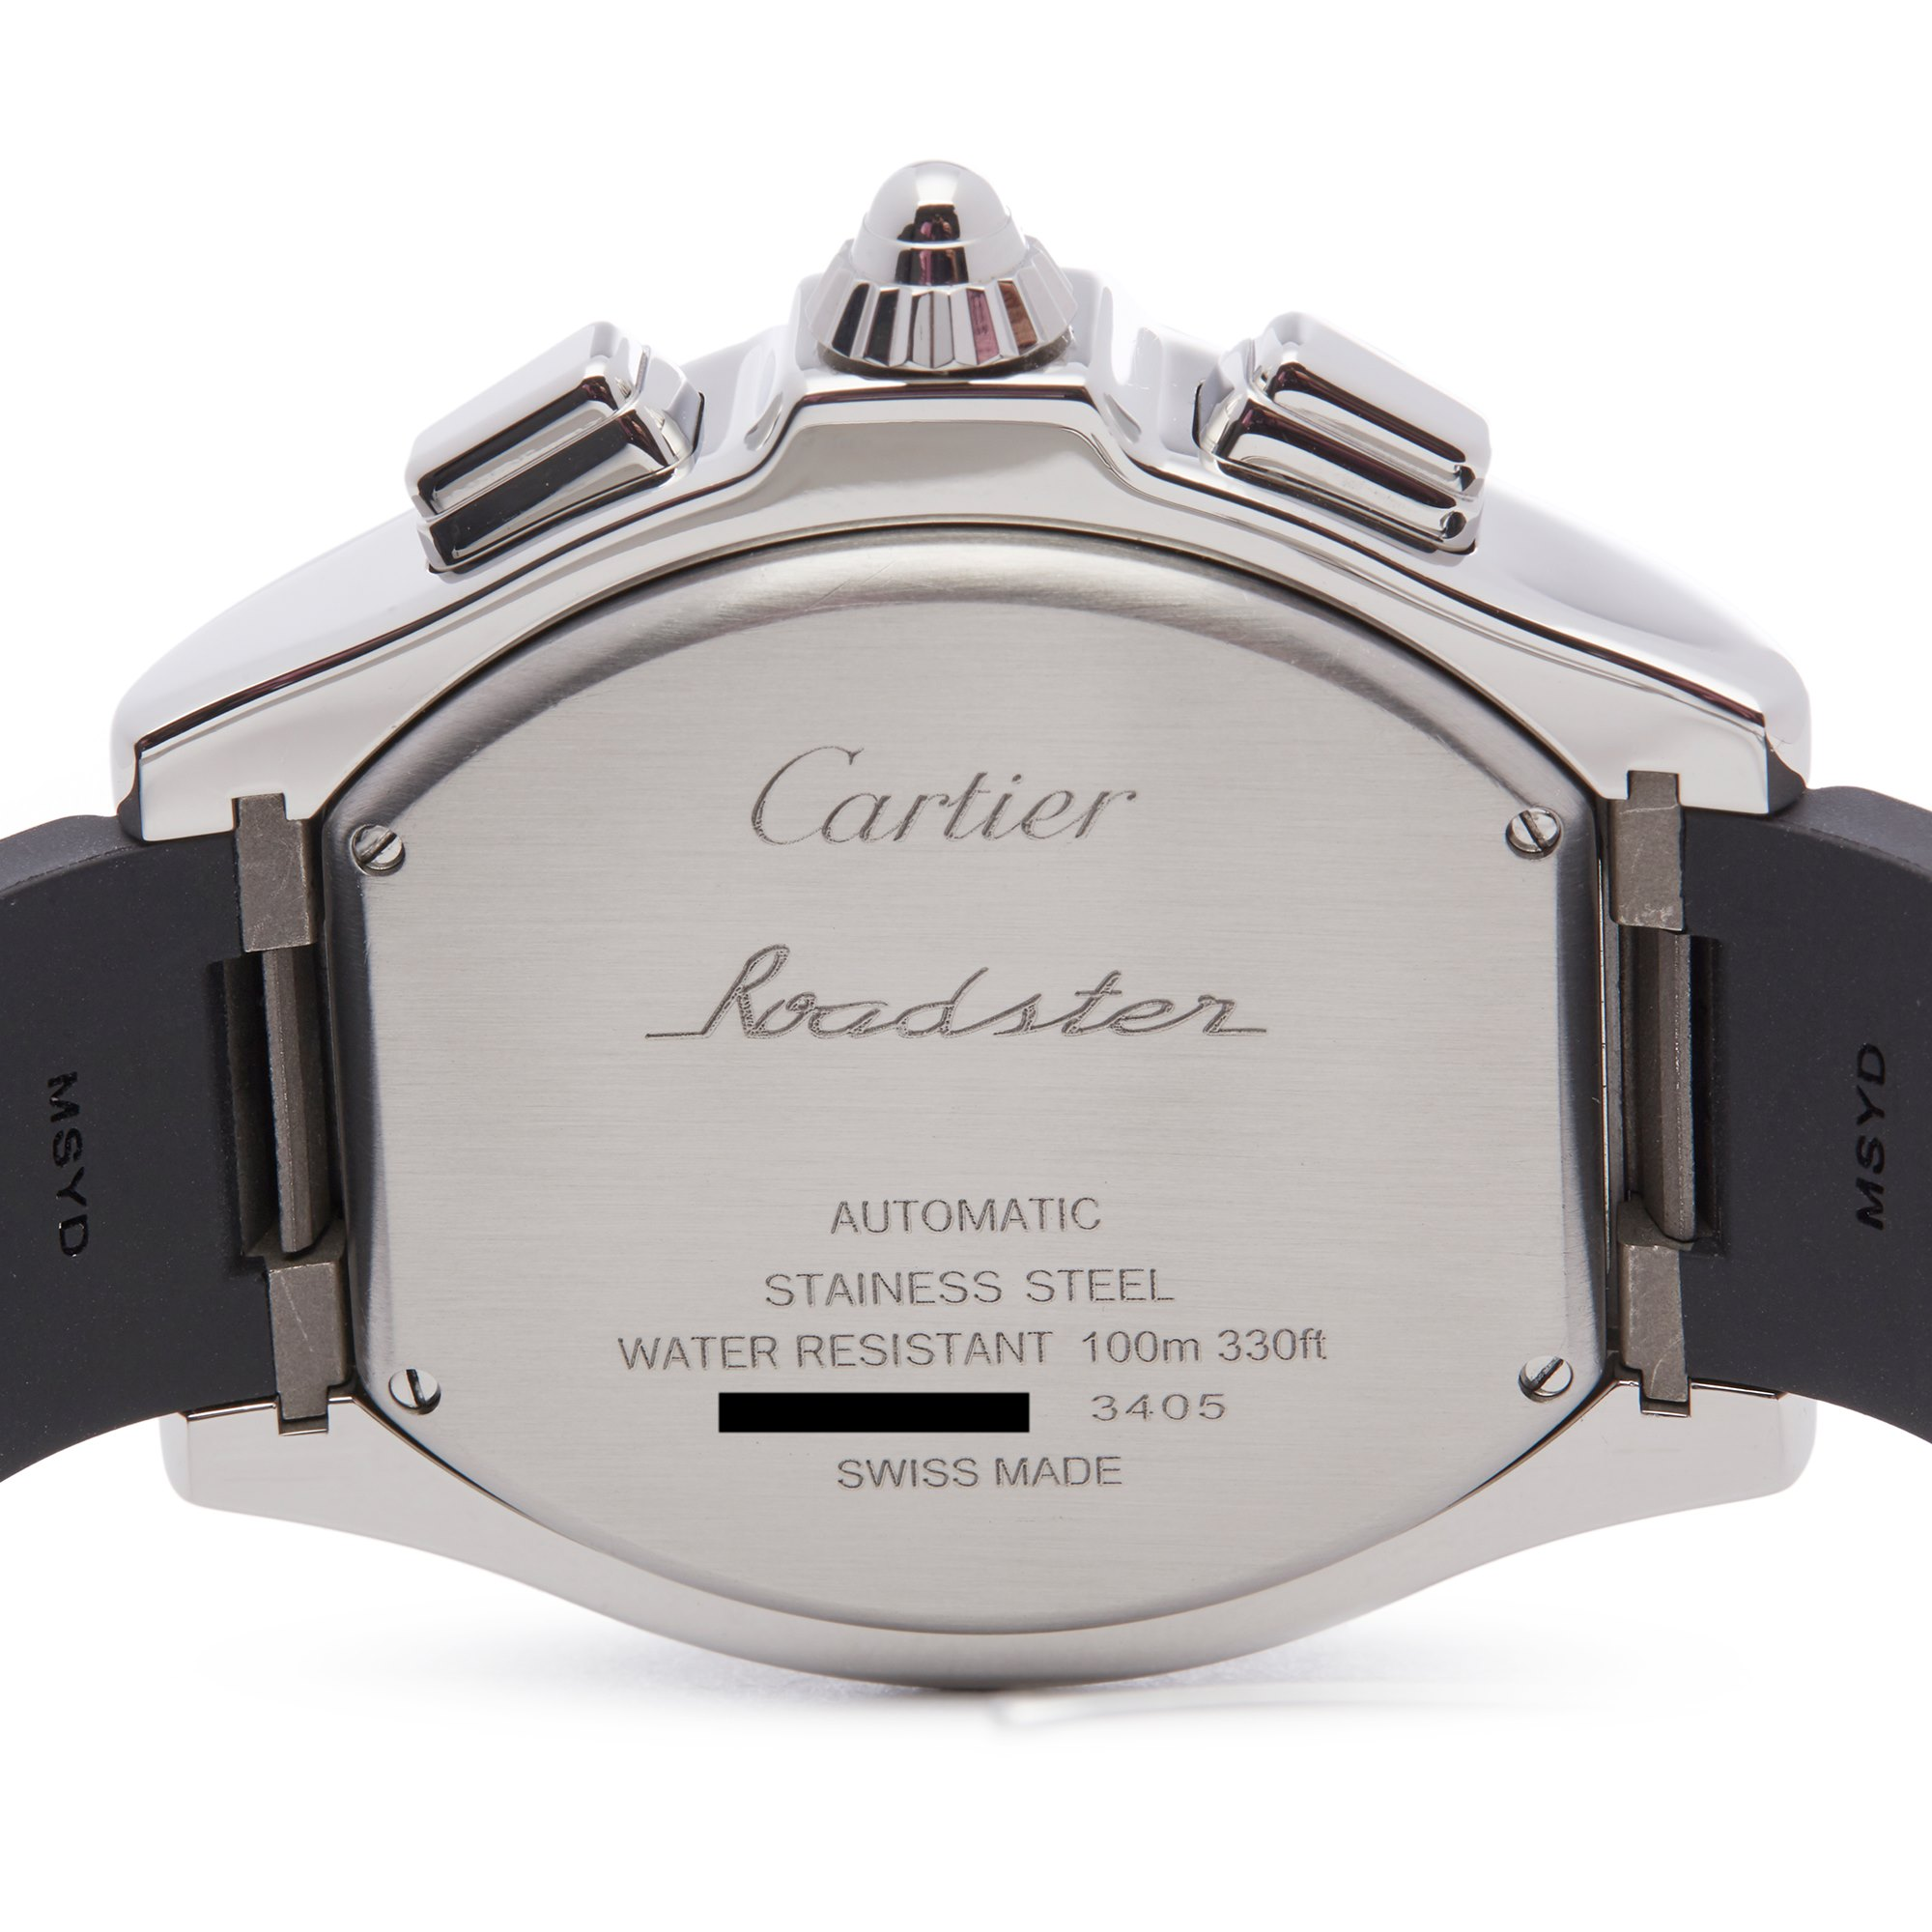 Cartier Roadster Chronograph Stainless Steel 3405